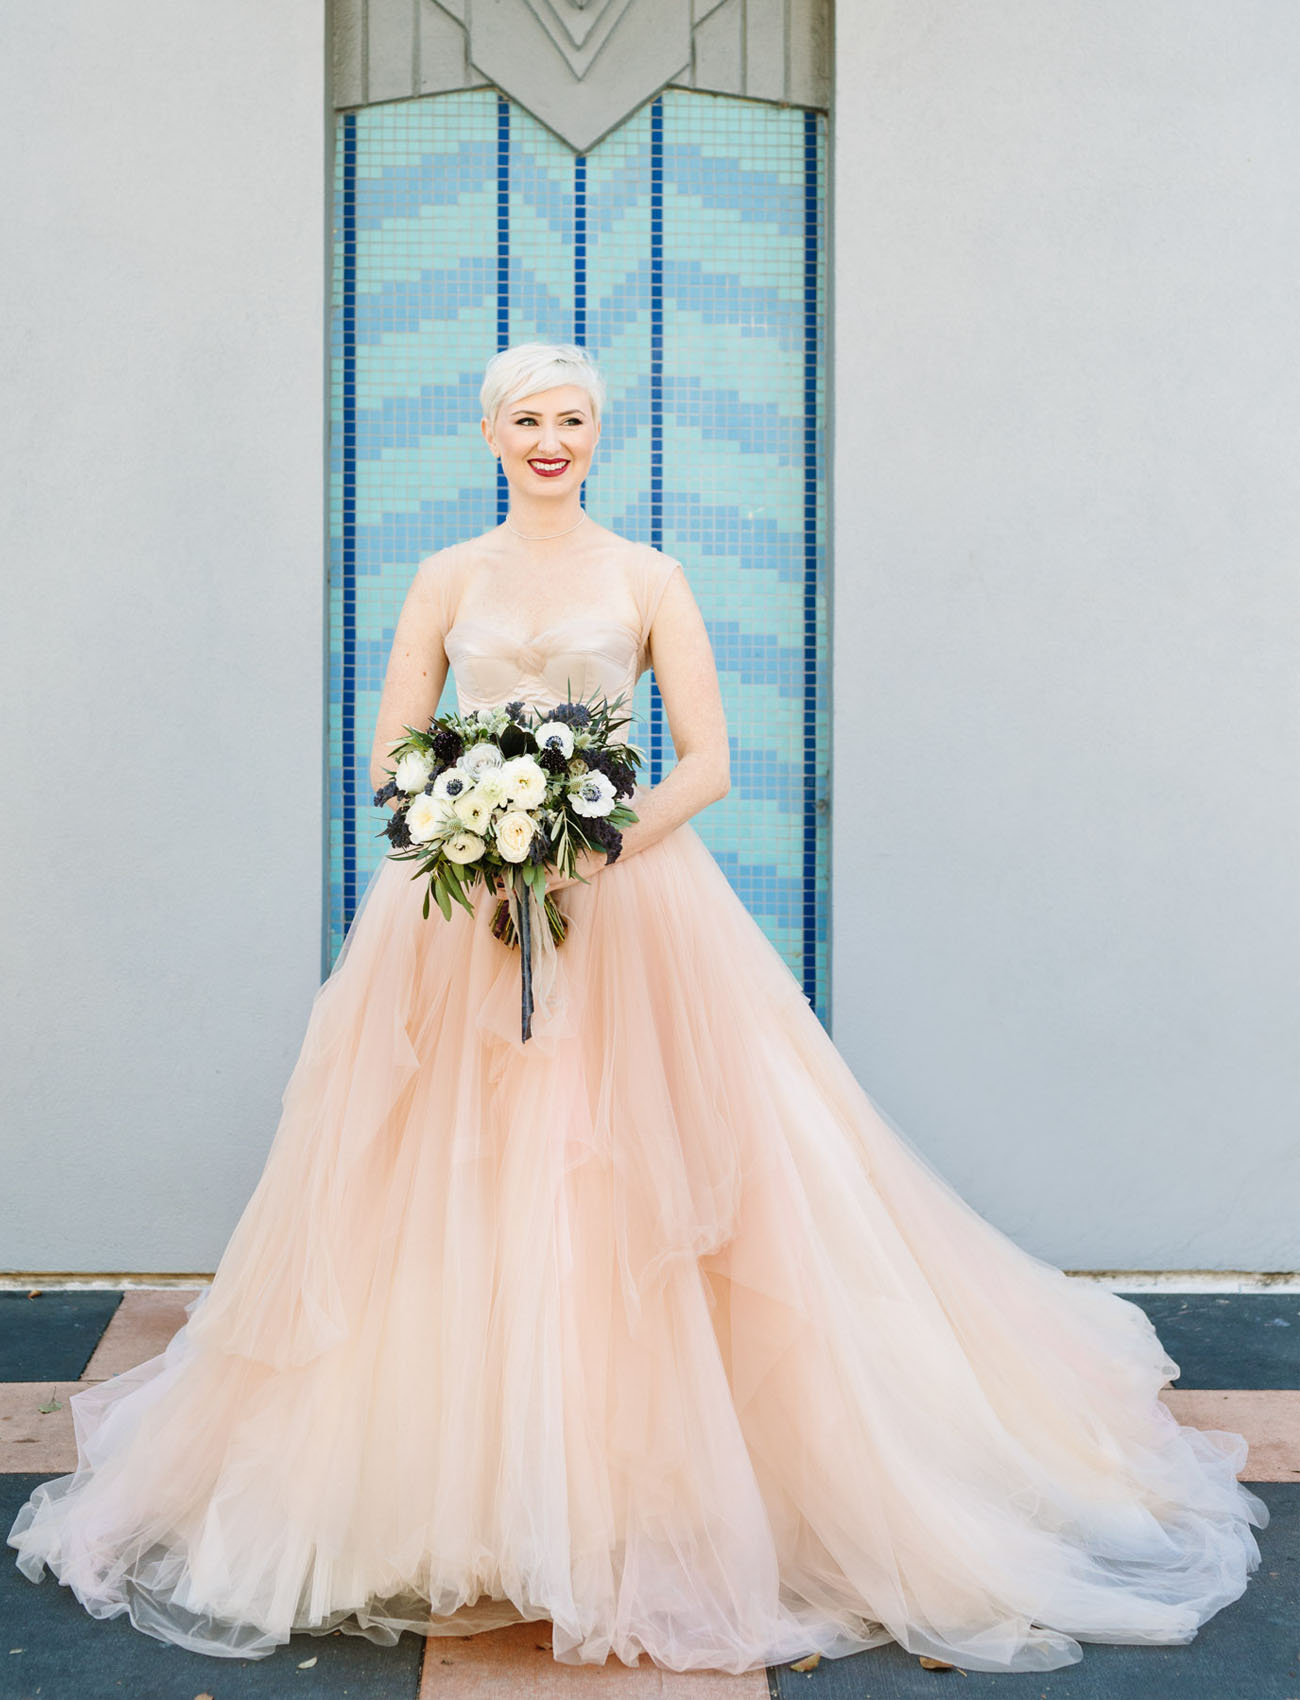 The bride was rocking a stunning blush wedding gown and looked aw so gorgeous